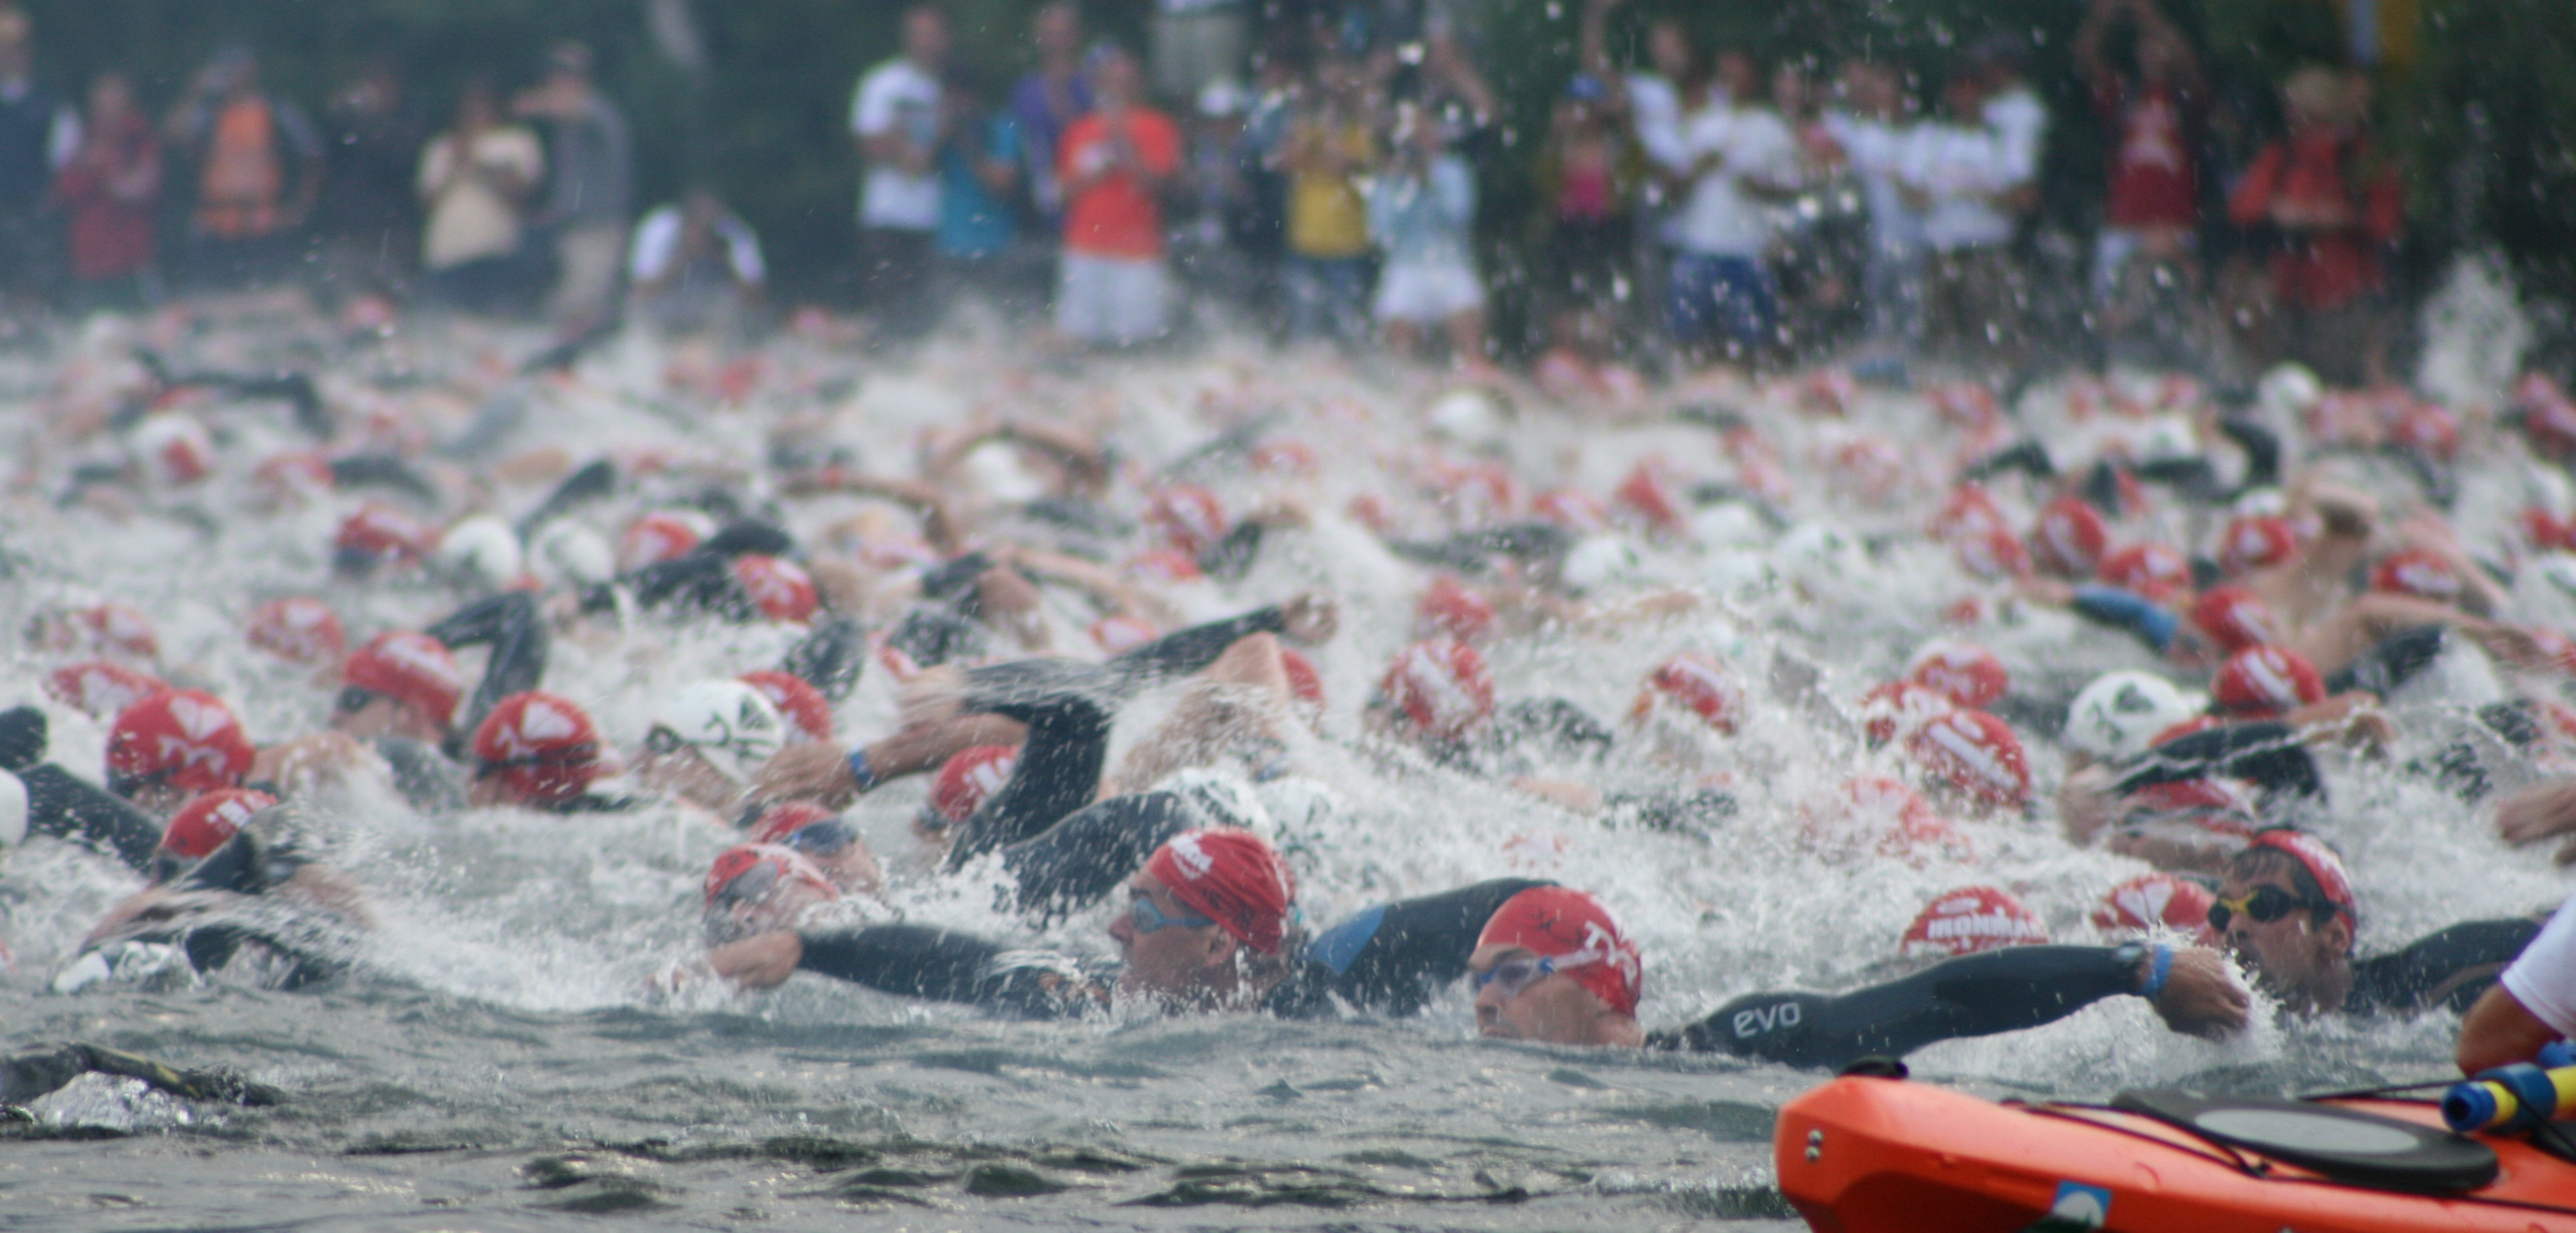 10 Triathlon Swim Tips For Open Water Swimming To Survive Your First Tri